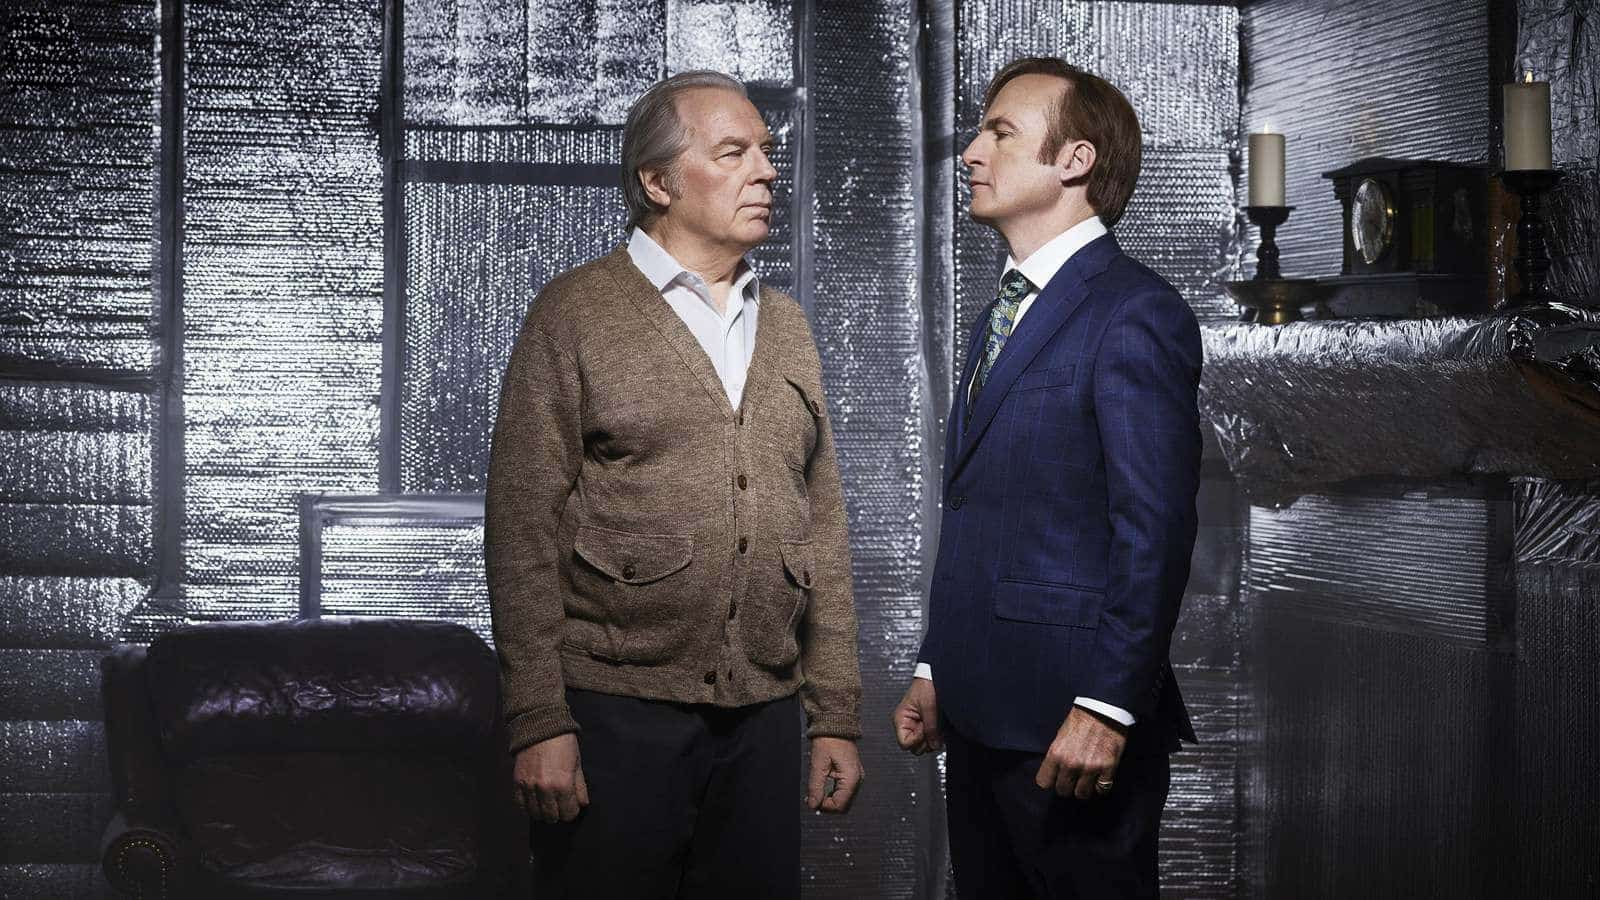 Better Call Saul is a eulogy for the antihero Golden Age of Television and Breaking Bad, Walter White / Chuck McGill Jimmy McGill